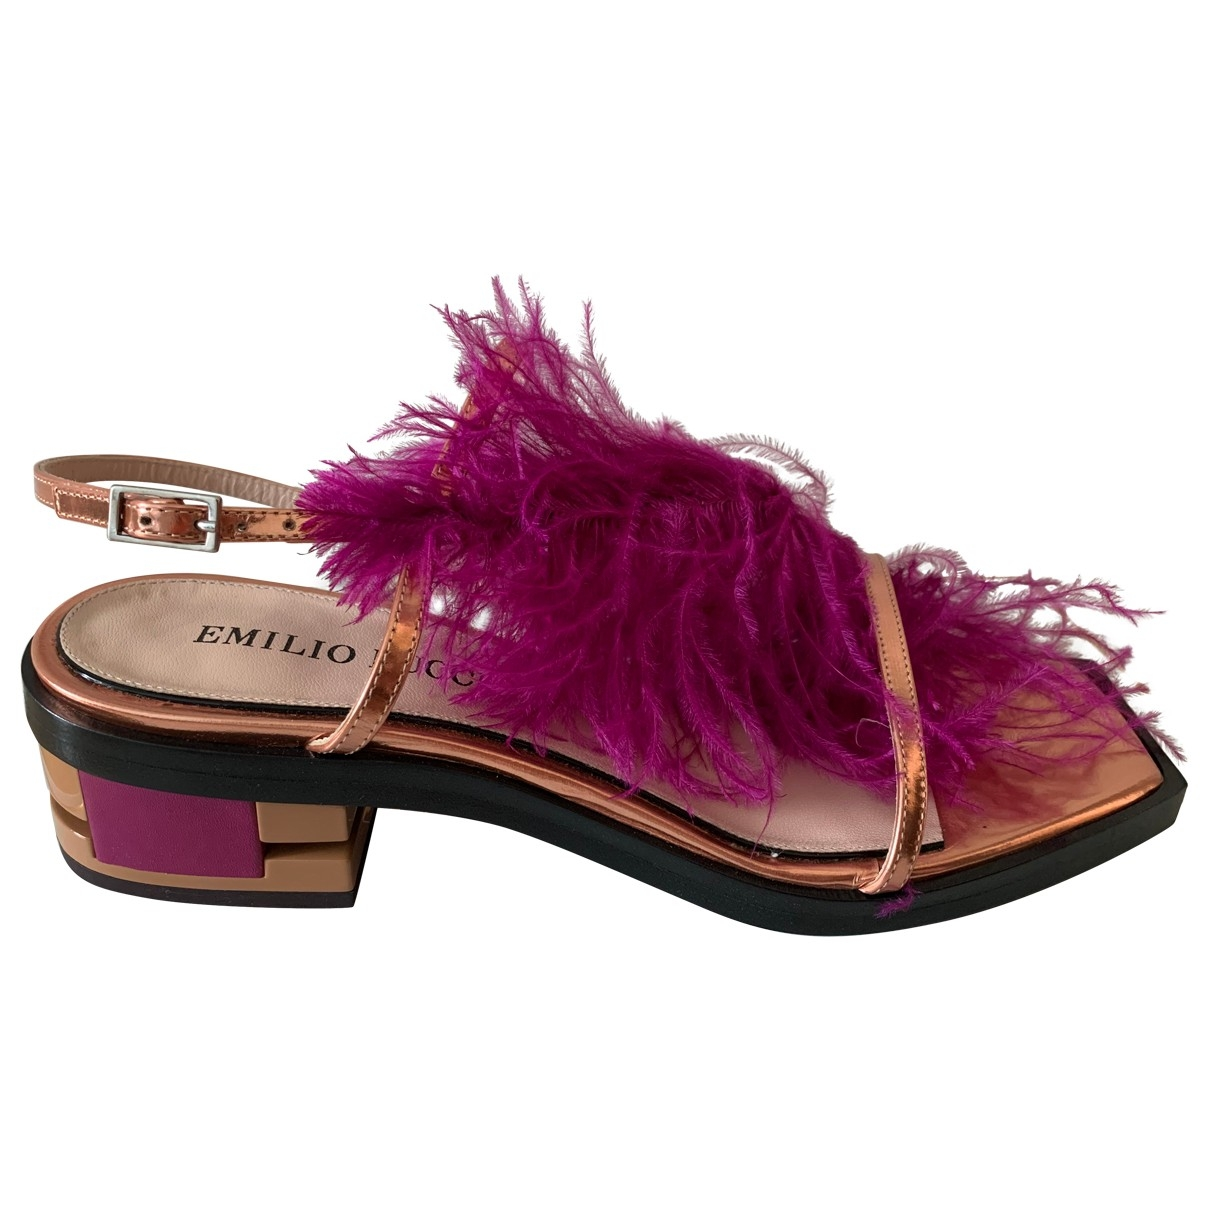 Emilio Pucci \N Purple Leather Sandals for Women 36 EU